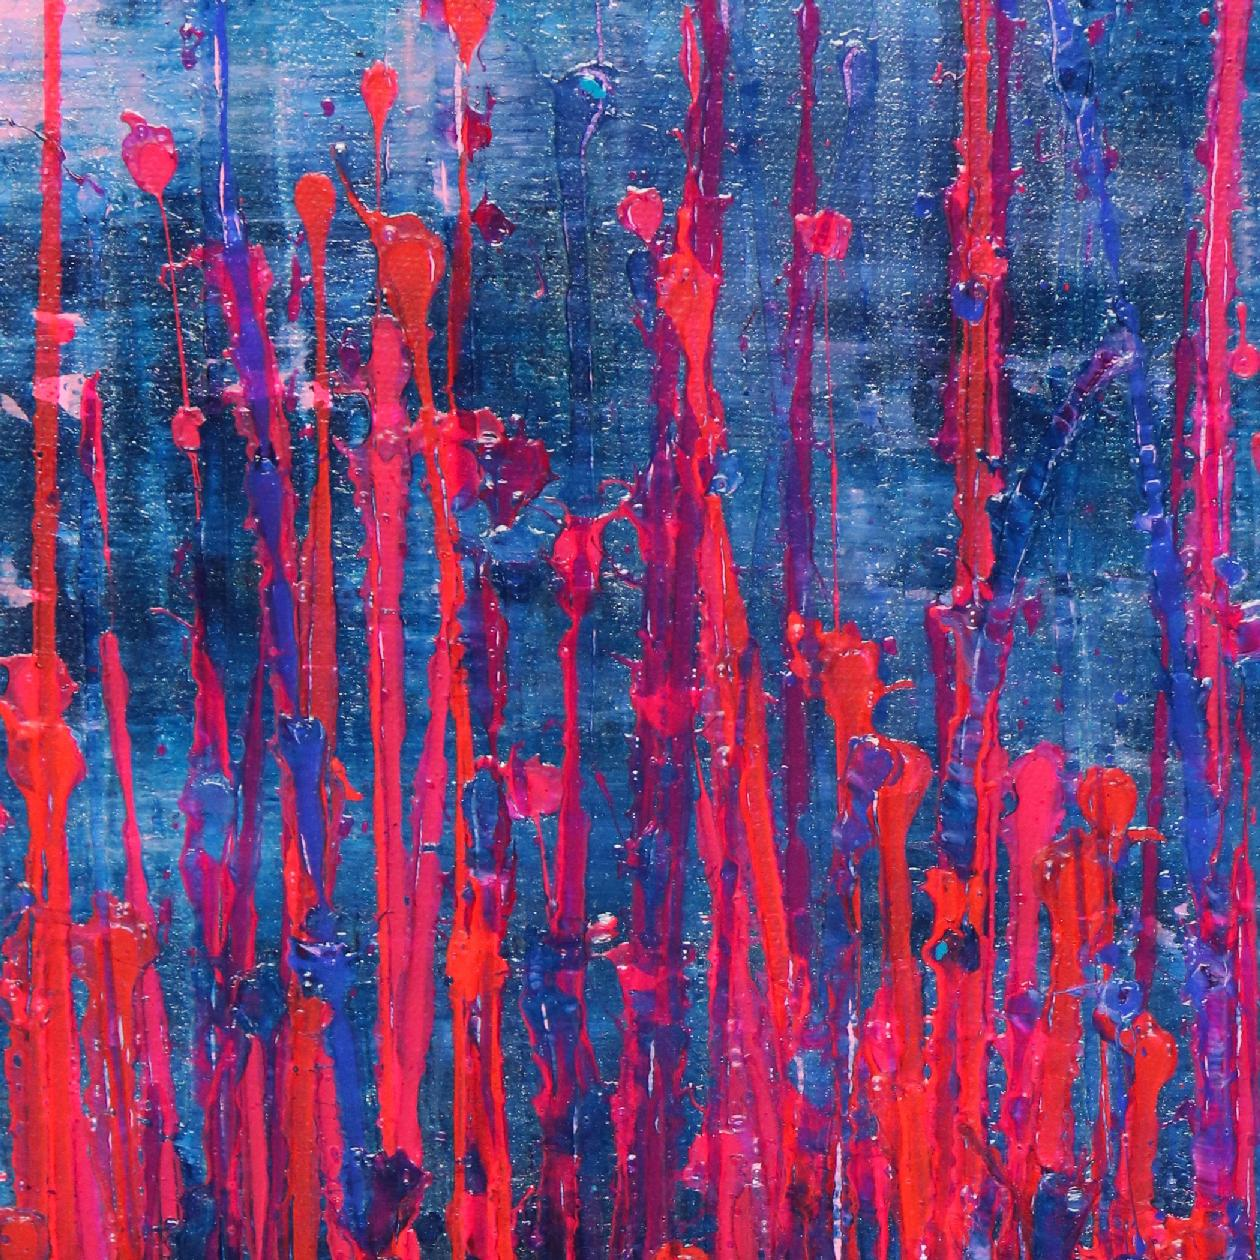 Detail - Pink takeover (over silver blue) (2020) by Nestor Toro